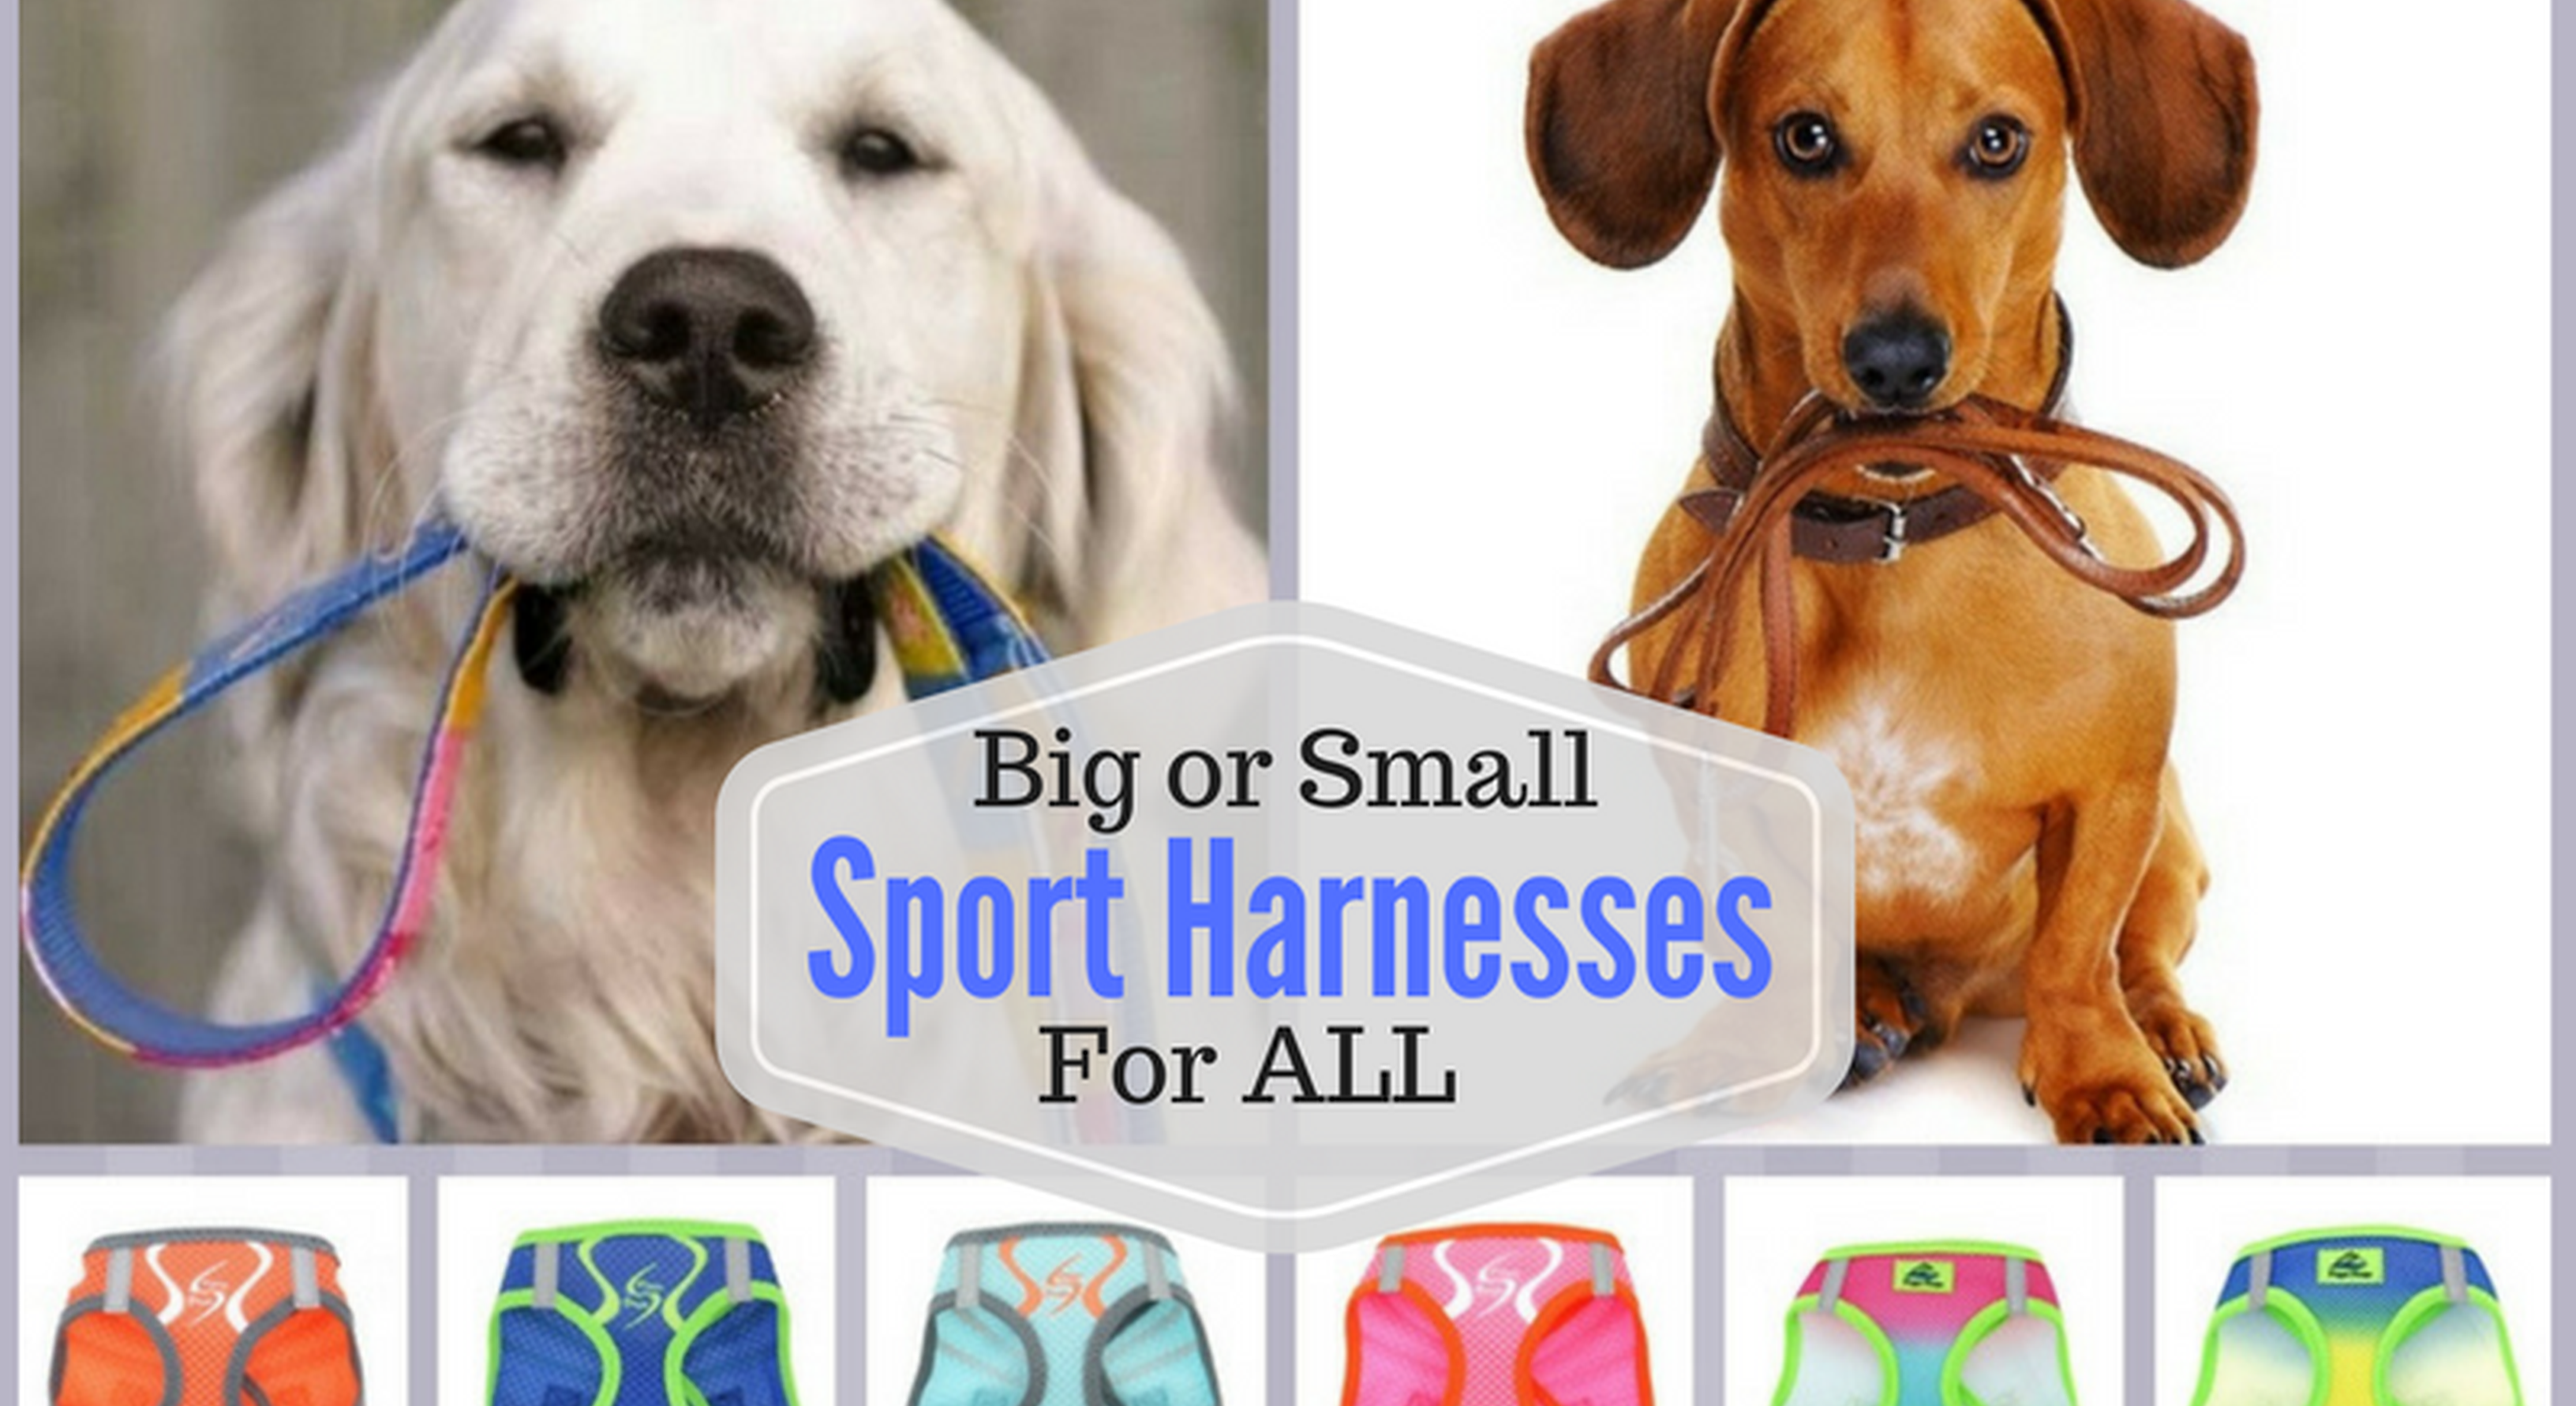 Pet Harneses for al sized dog breeds - over the head halters, step in vests, wrap-around jackets